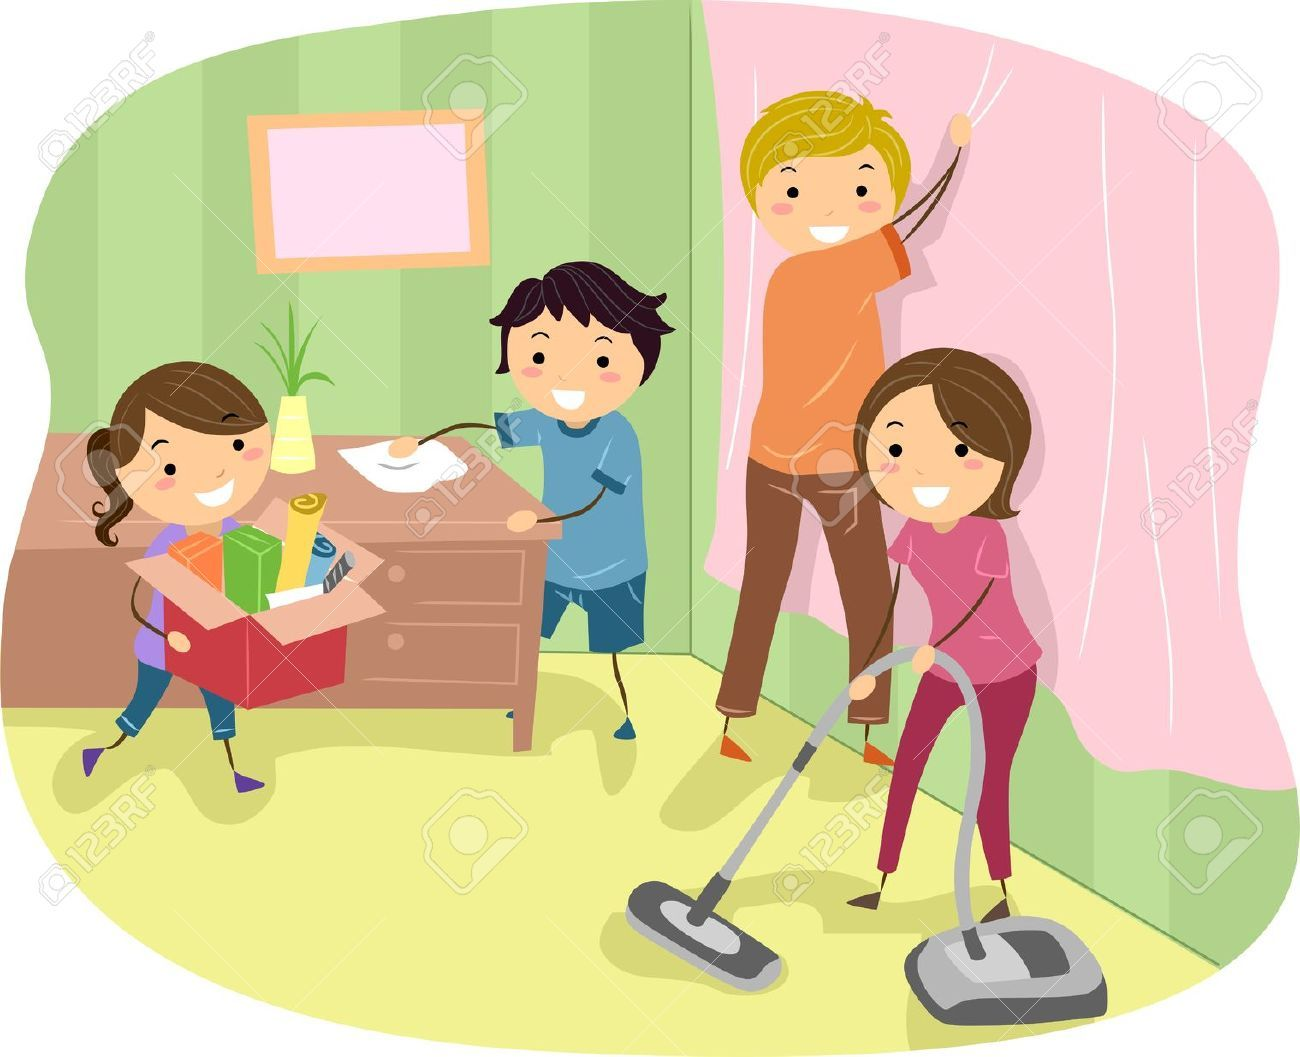 Family cleaning together clipart 4 » Clipart Portal.